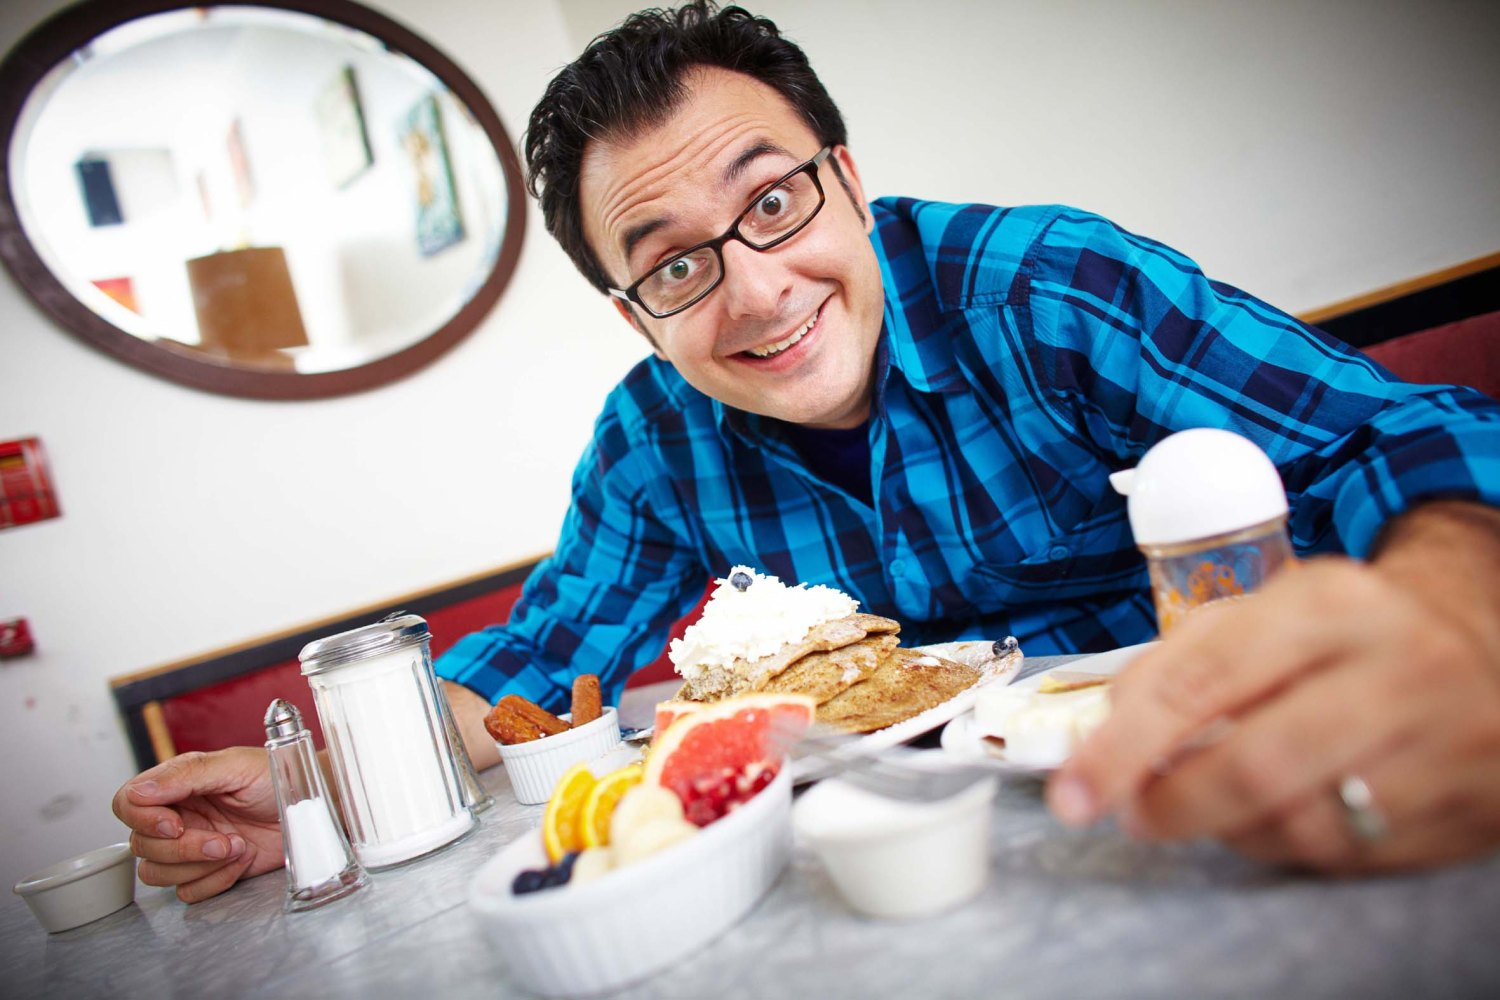 John Catucci from 'You Gotta Eat Here'